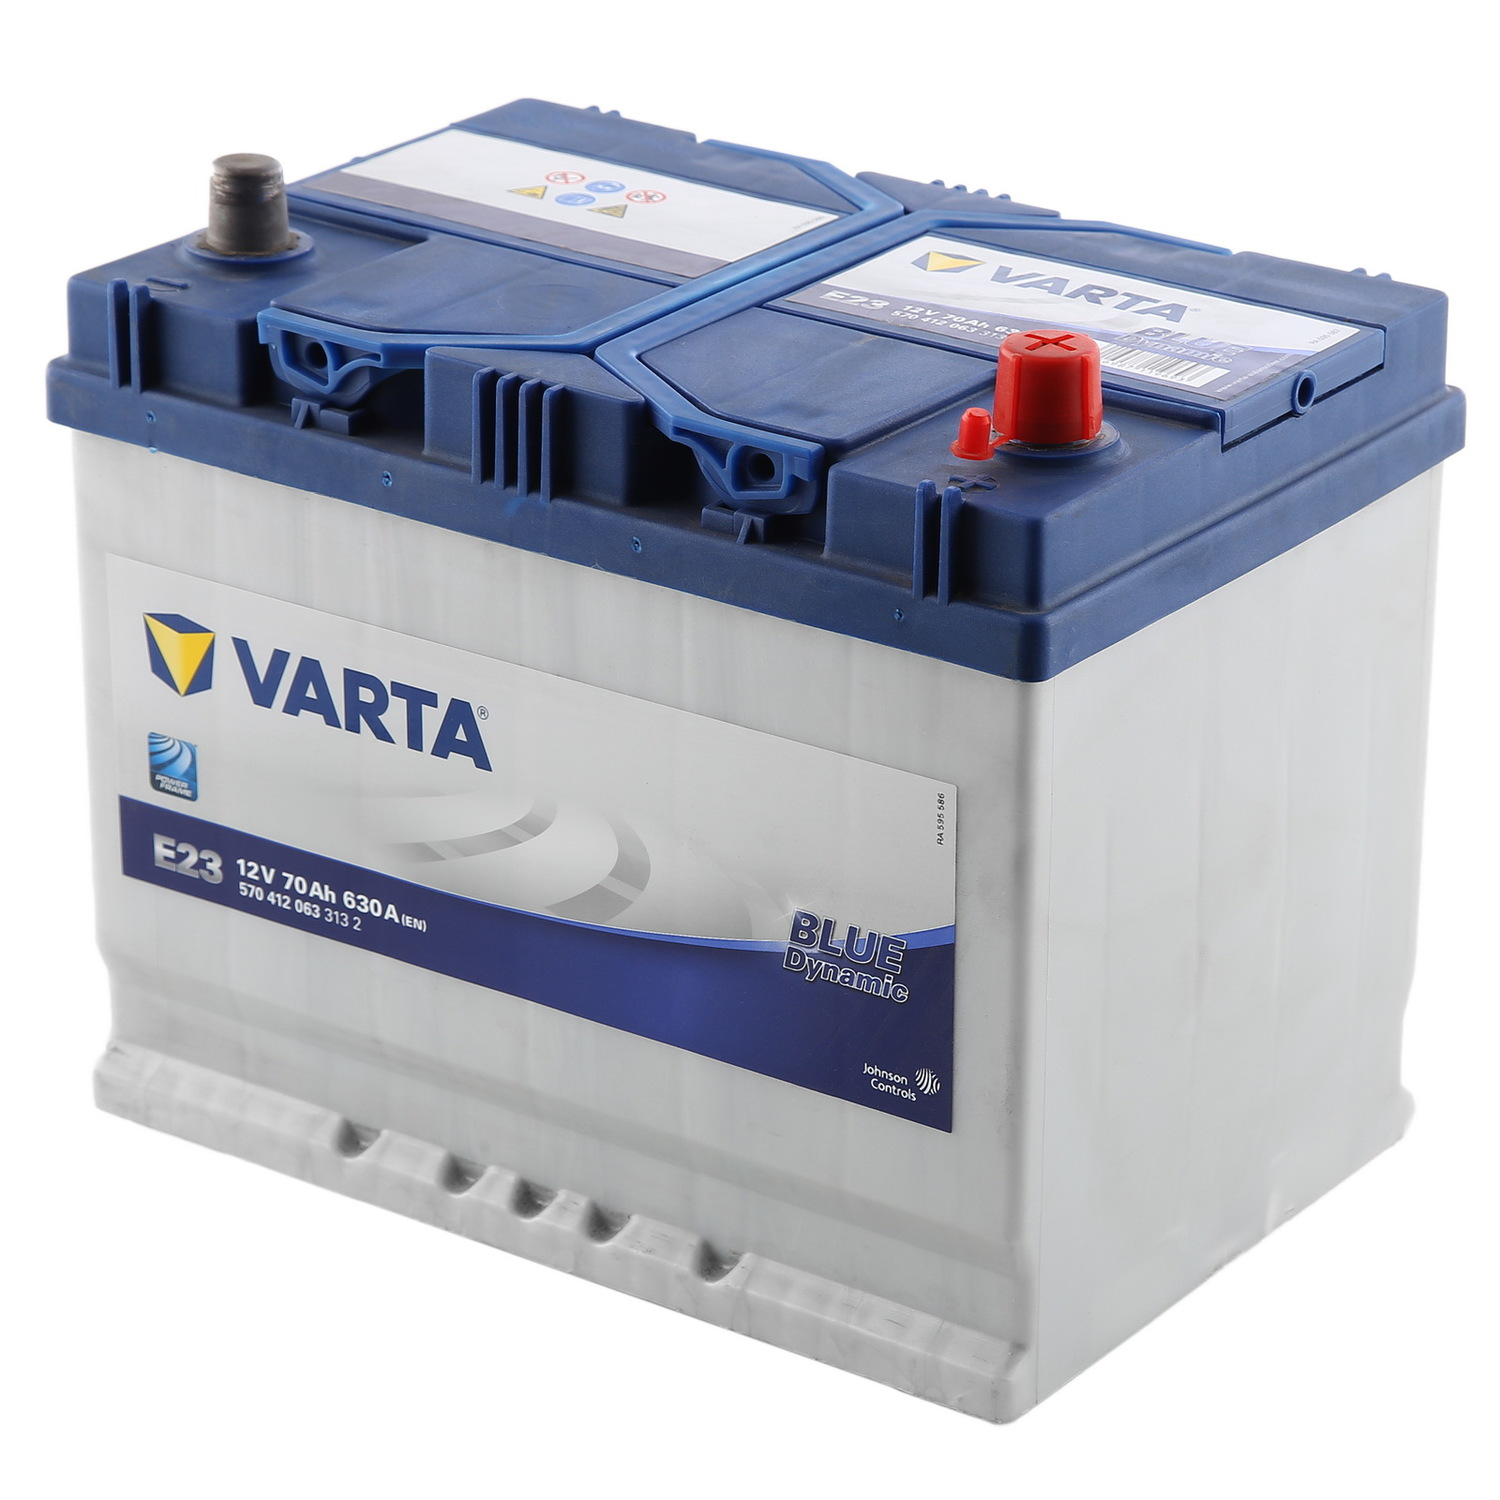 "<span style=""font-weight: bold;"">VARTA 70 a\h&nbsp;</span>"